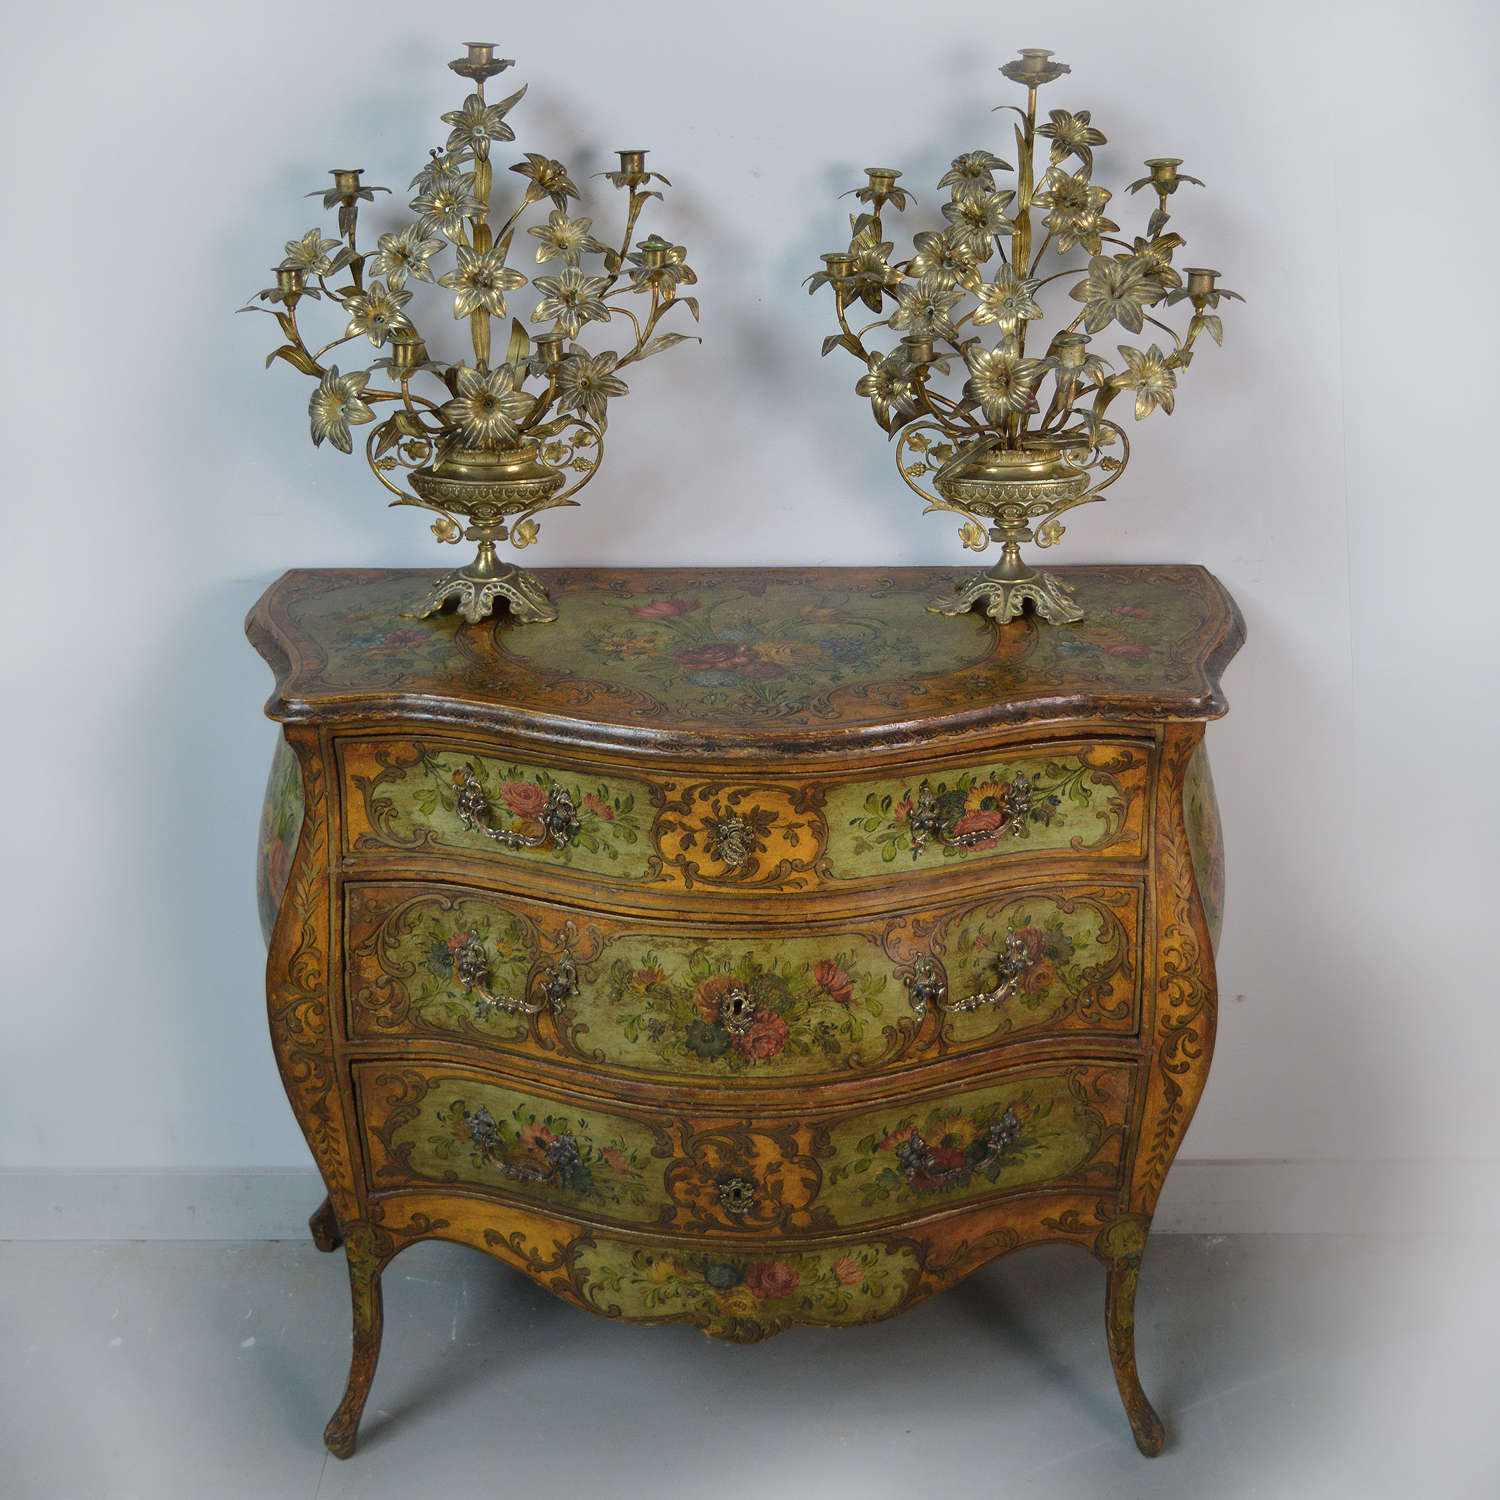 19th Century Venetian Louis XV style commode